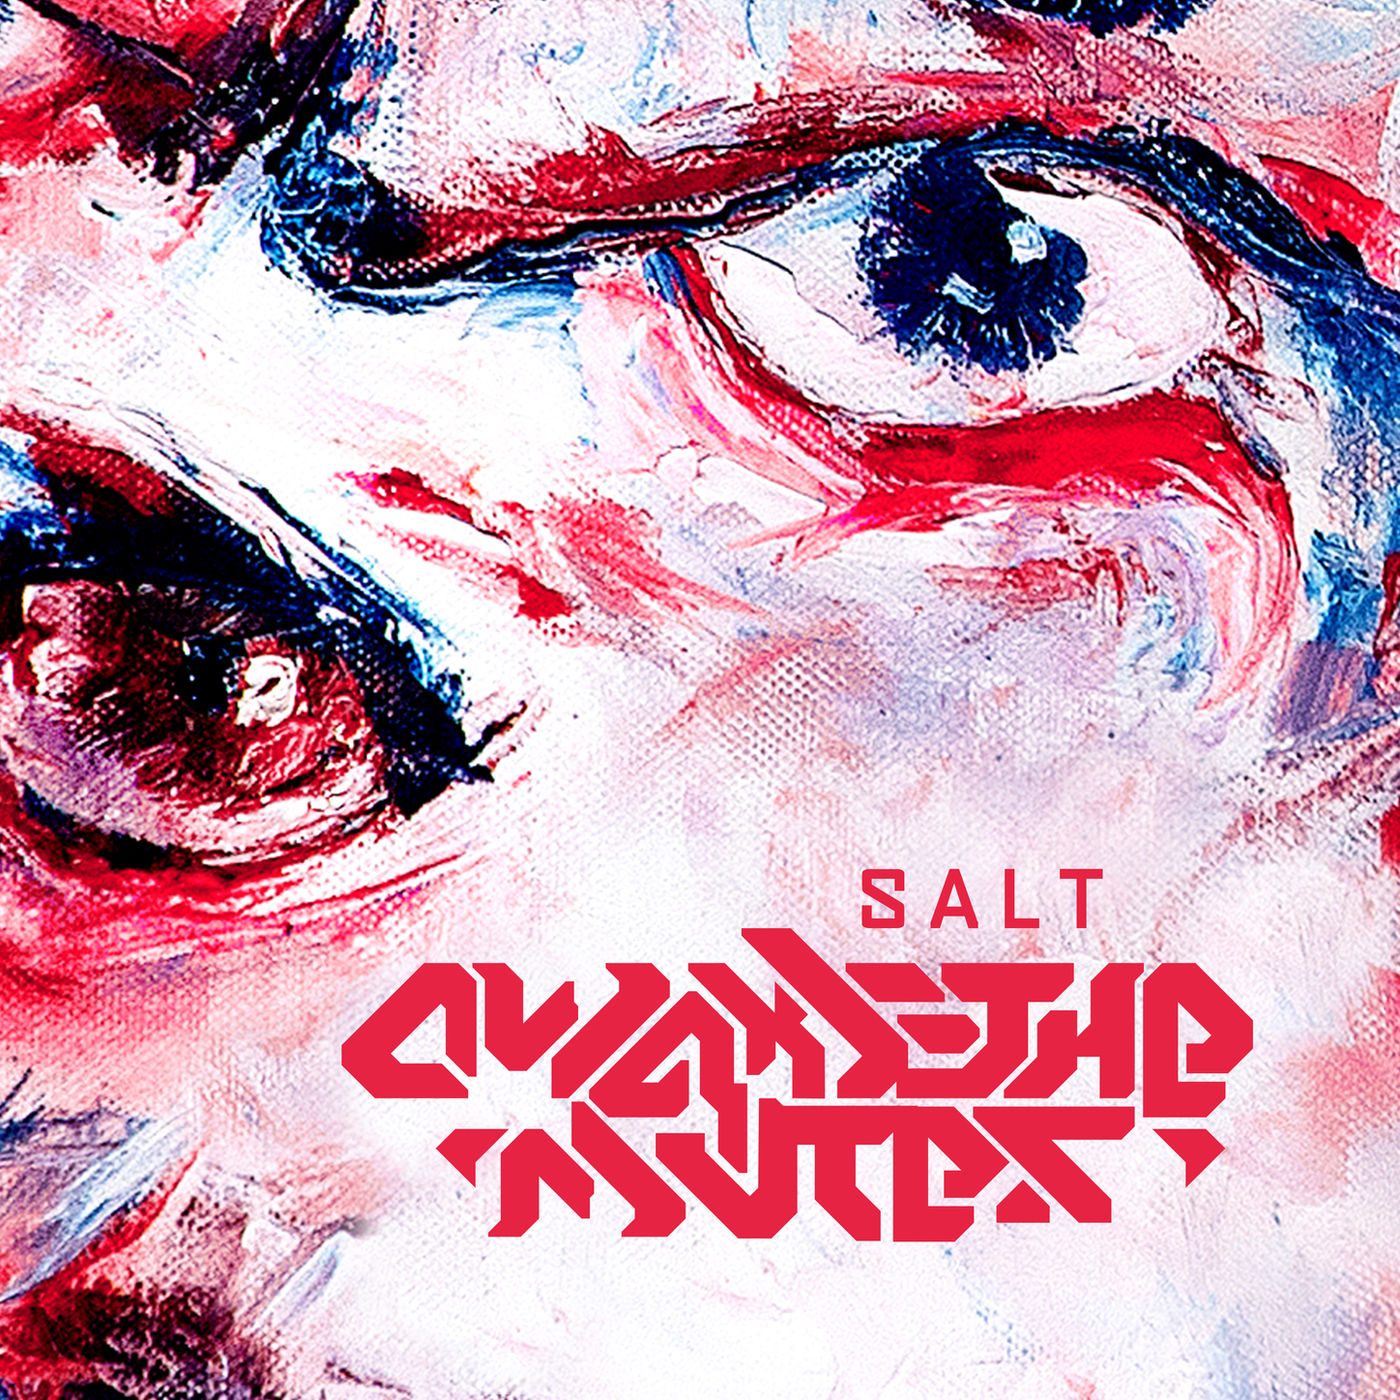 Awake The Mutes - Salt [single] (2020)